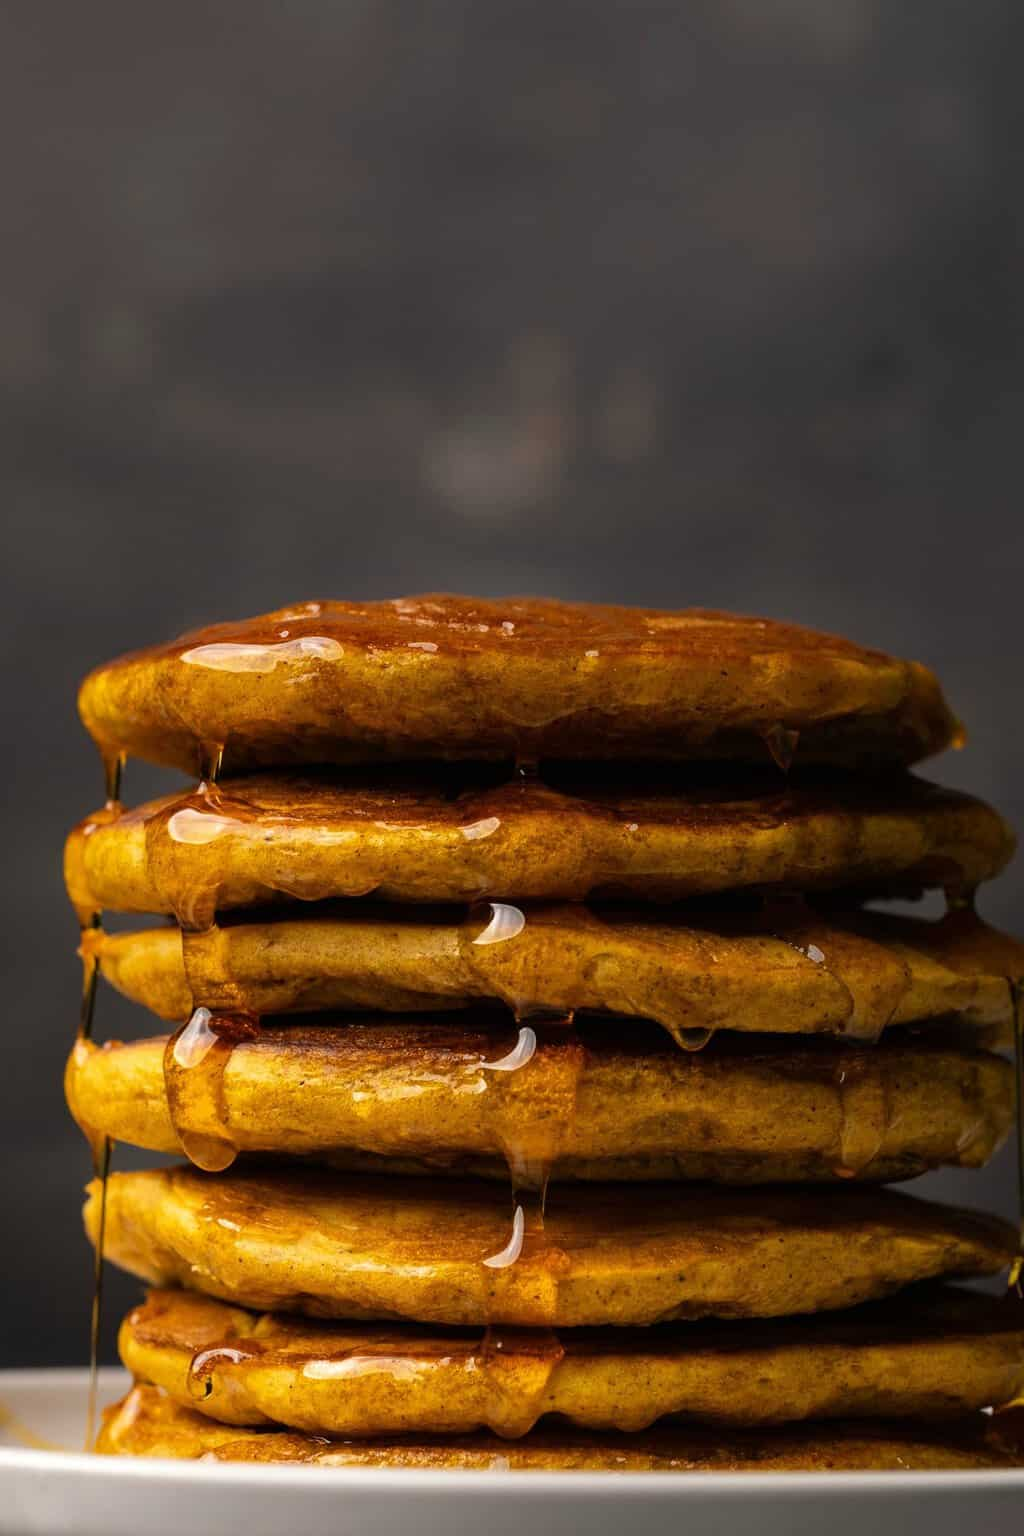 A stack of vegan pumpkin pancakes drizzled with syrup on a white plate.